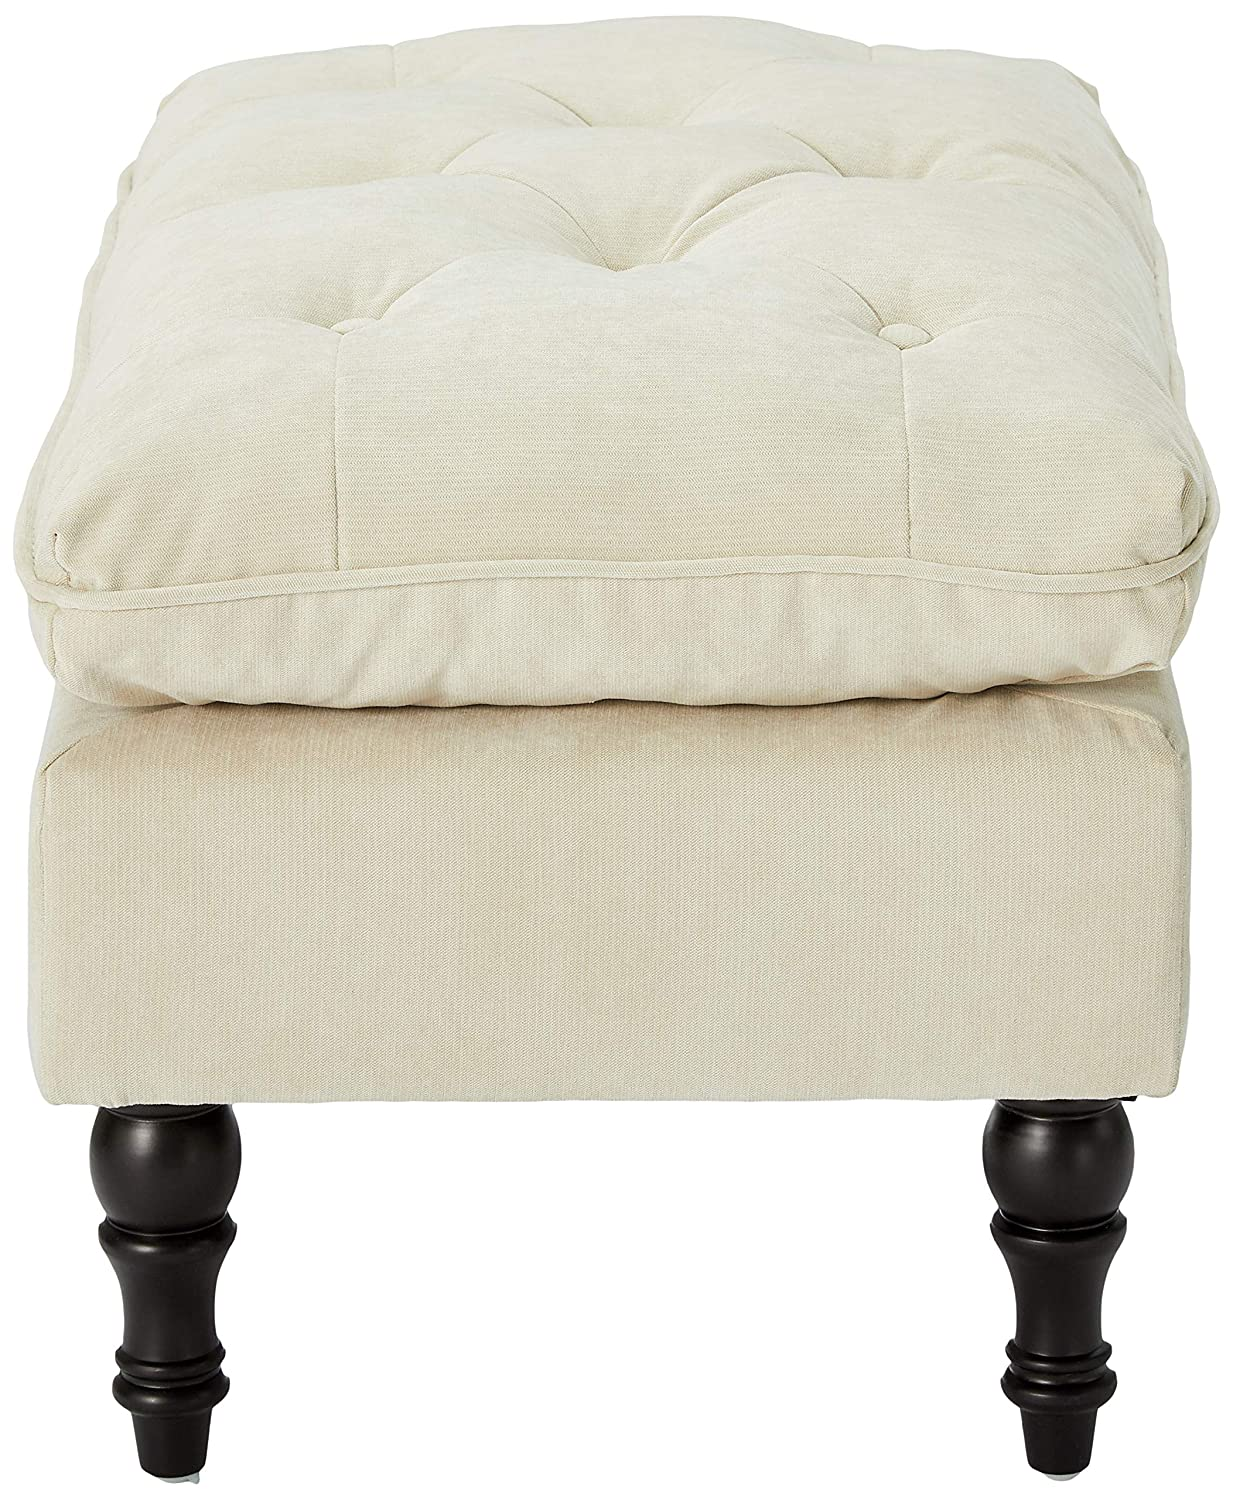 Christopher Knight Home 216601 Living Cordoba Tufted Fabric Ottoman Footstool, Cream